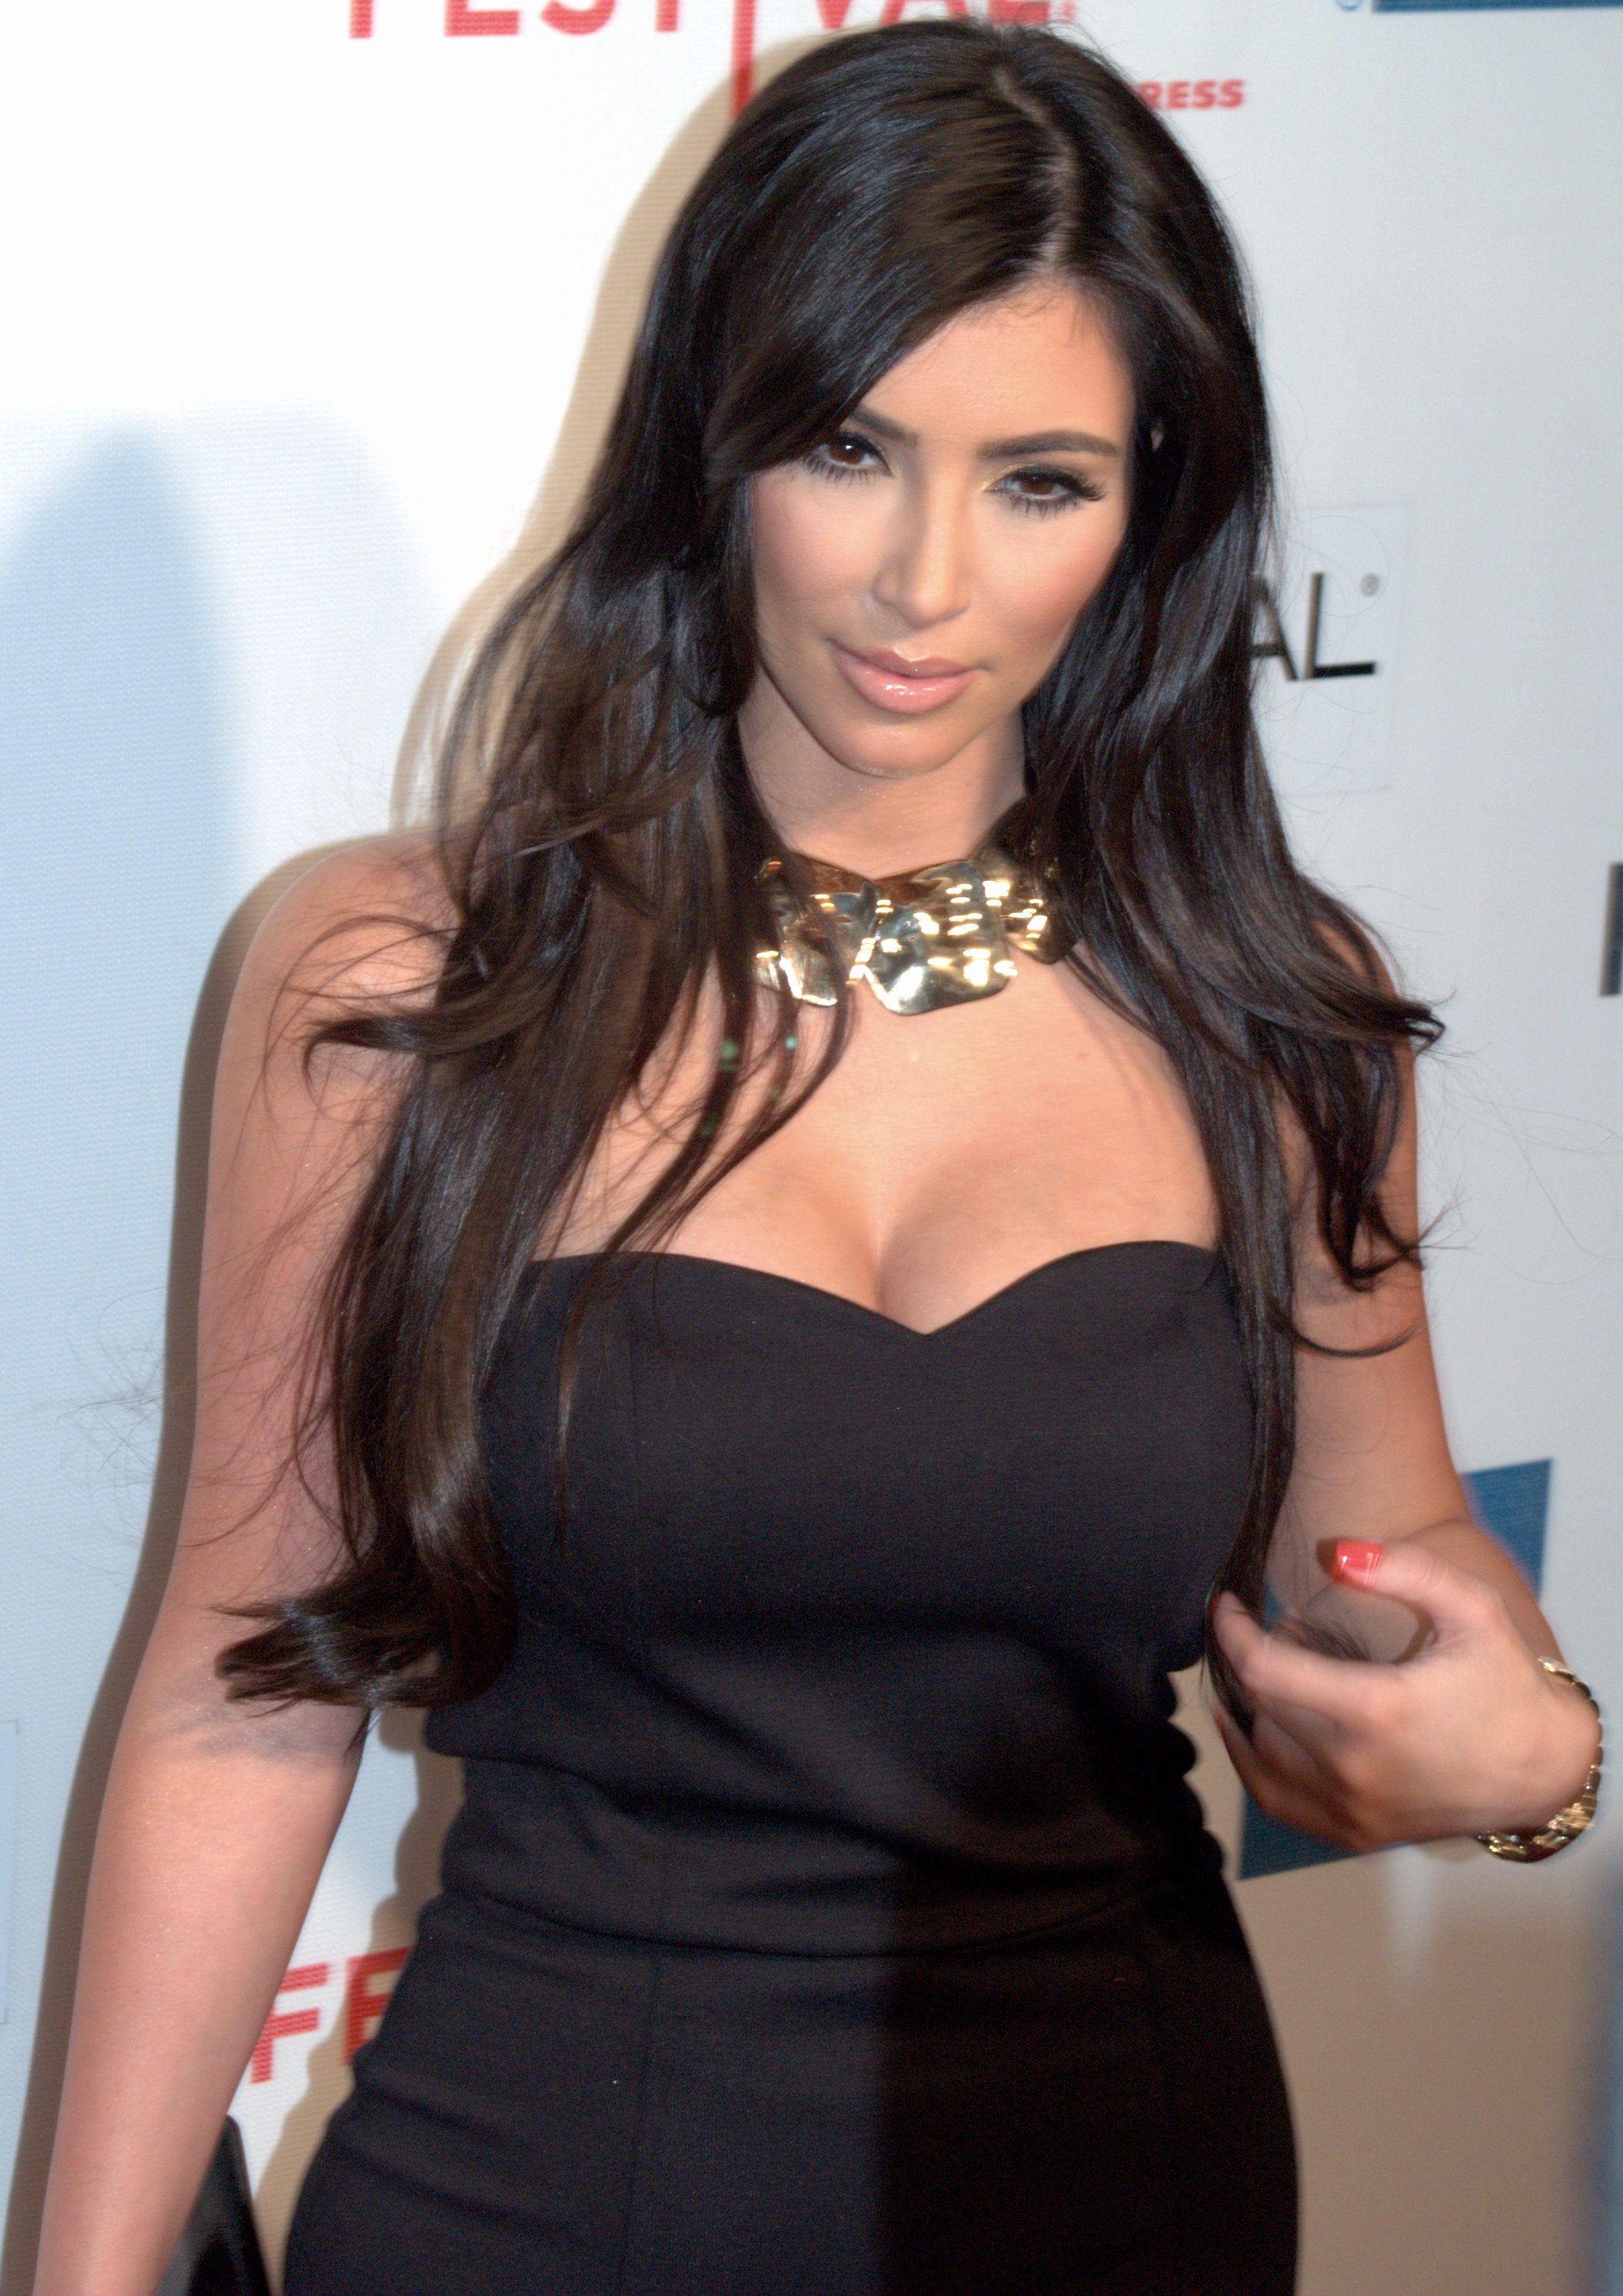 Description Kim Kardashian 2009 Tribeca portrait.jpg